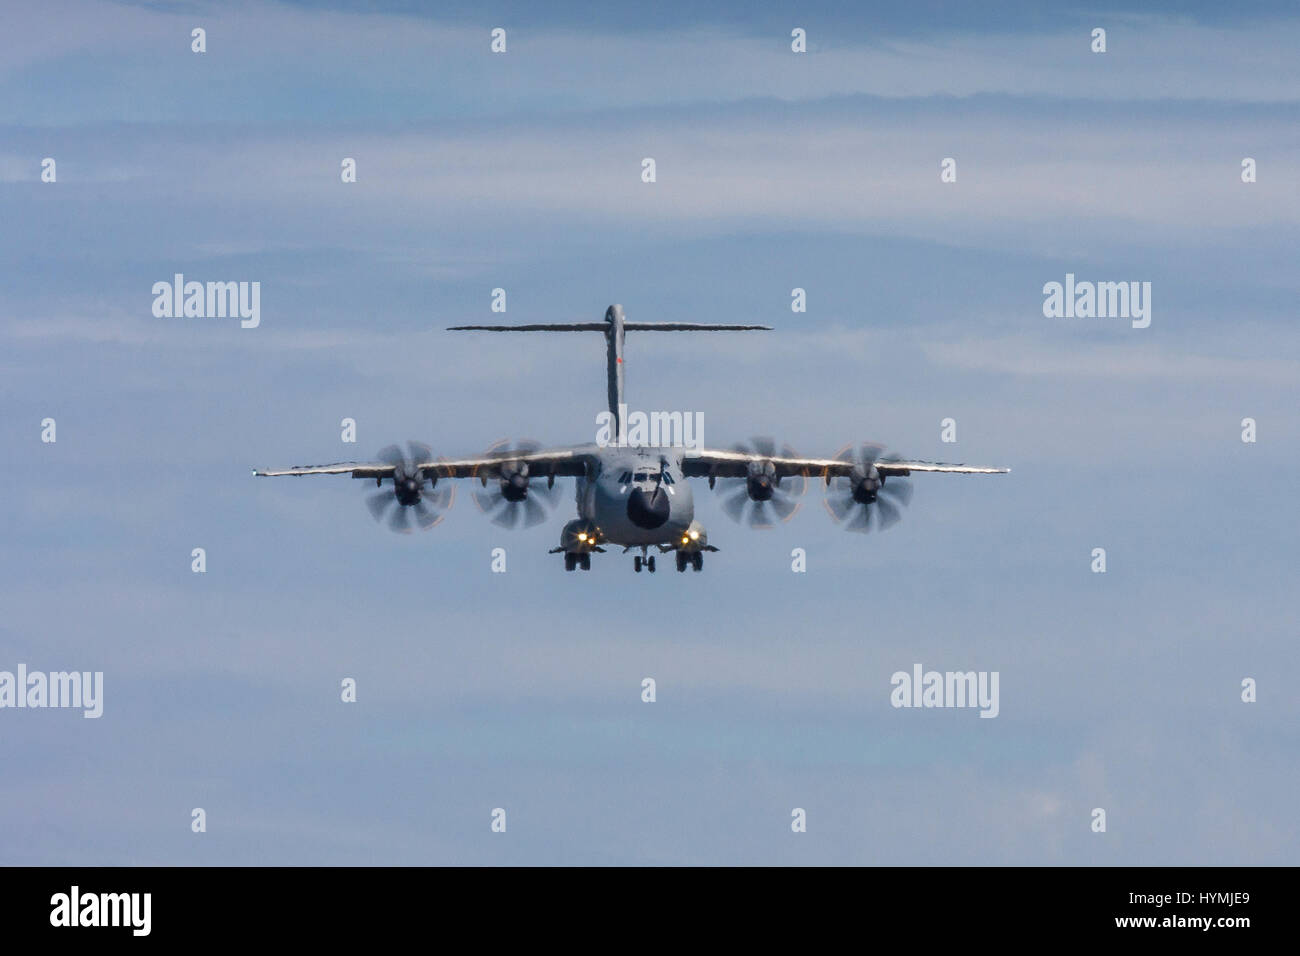 Airbus A400M Atlas on approach to land on July 19th 2010 at Farnborough, Hampshire, UK - Stock Image